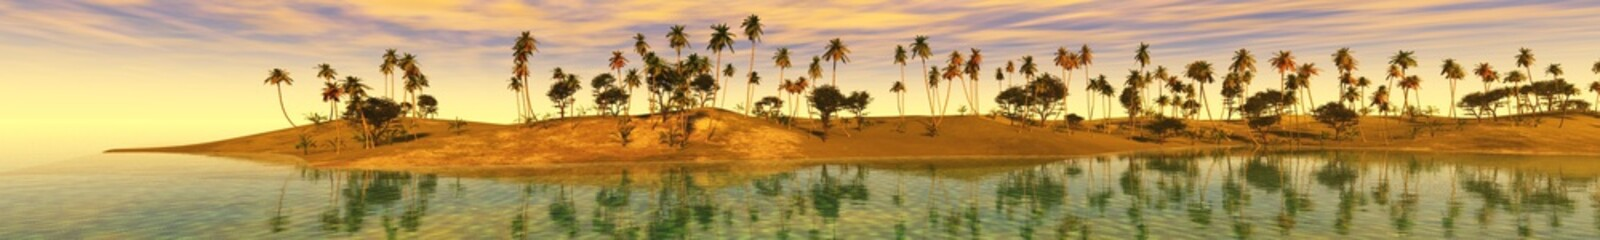 Fototapeta Panorama ocean sunset, island in the sea, panoramic view of sunset in the sea, palm trees on the island.